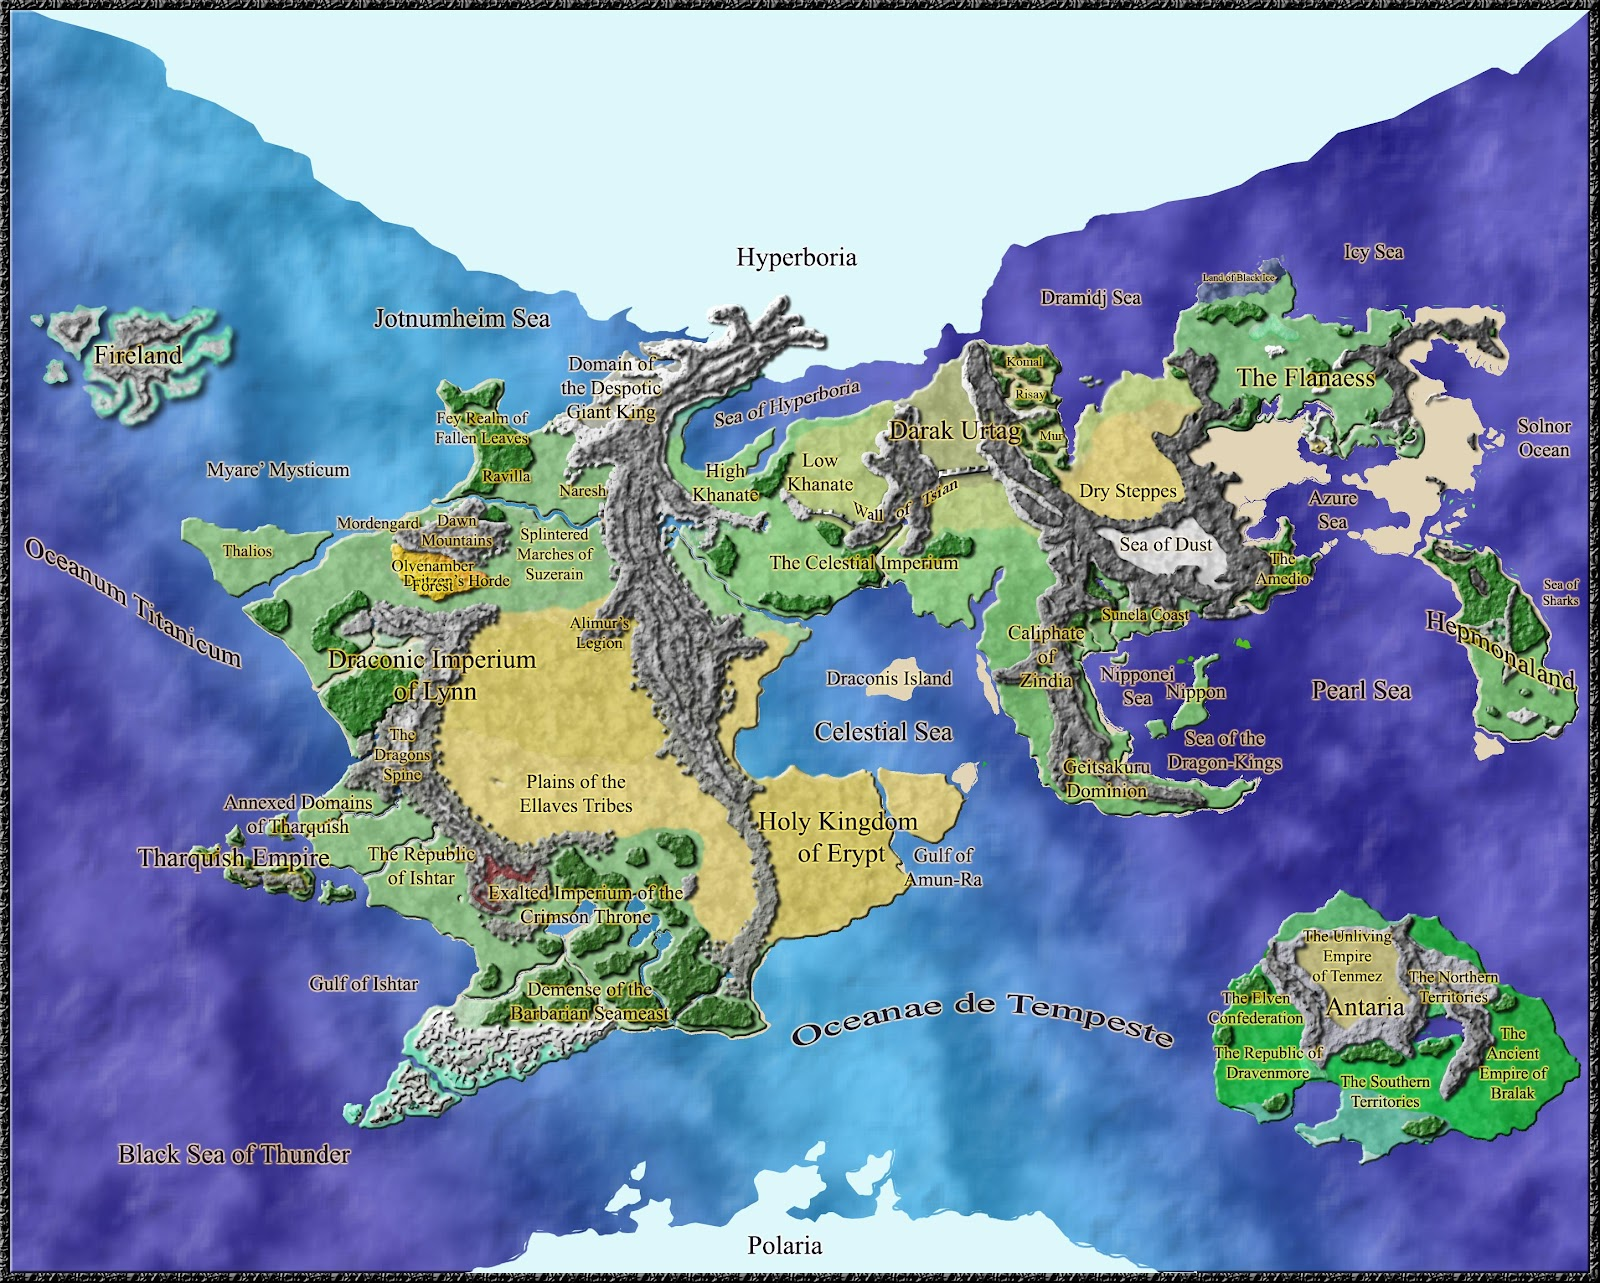 and the rest of the map